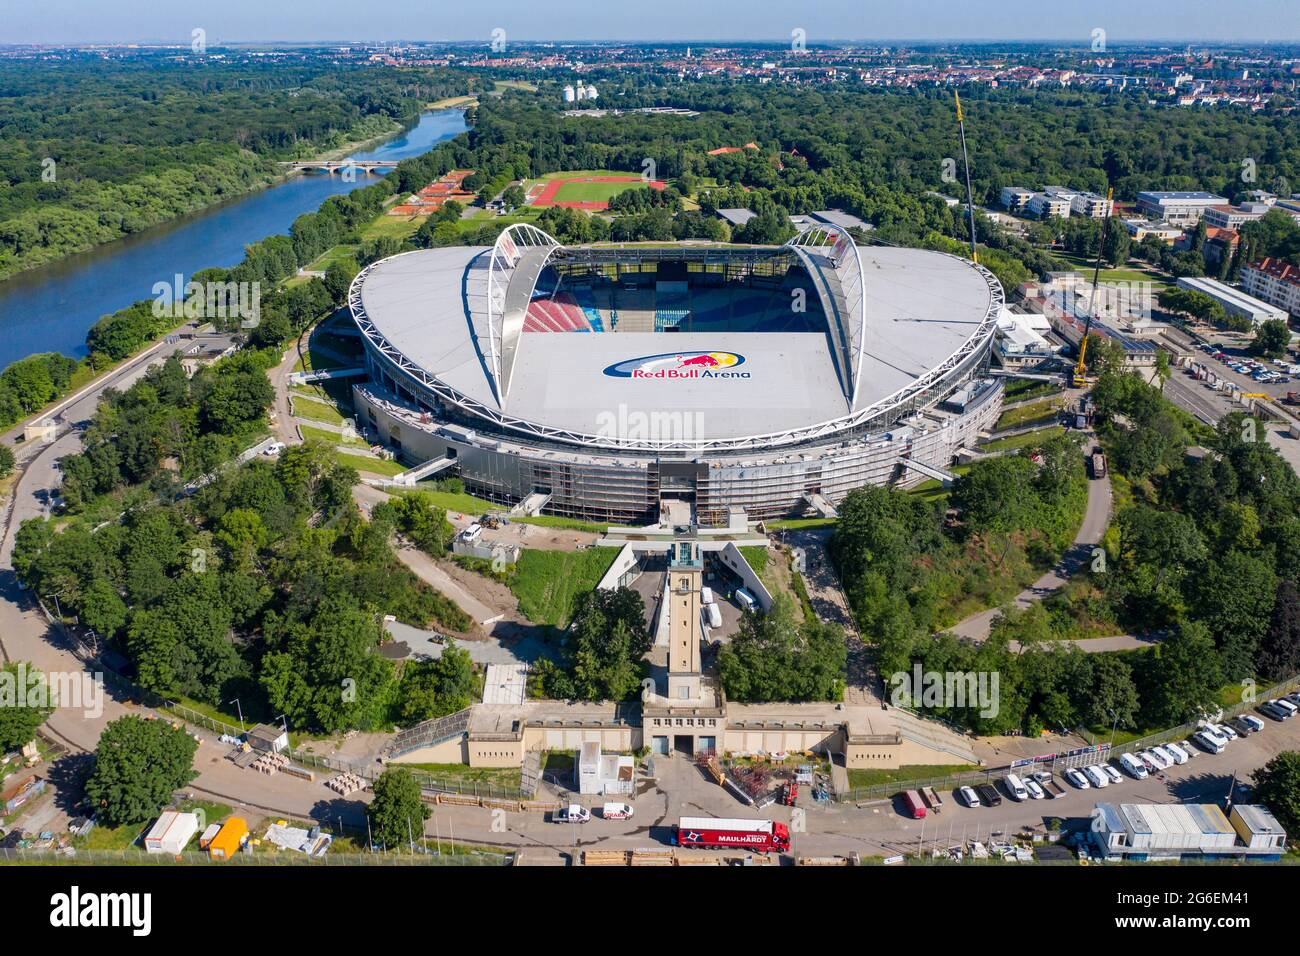 No new stadium then, just an expansion of what's already available at the stadium. 14 June 2021 Saxony Leipzig Football Bundesliga Rb Leipzig Two Cranes And Lots Of Construction Vehicles Are At The Red Bull Arena The Home Ground Of The Rasenballer Is Being Rebuilt The